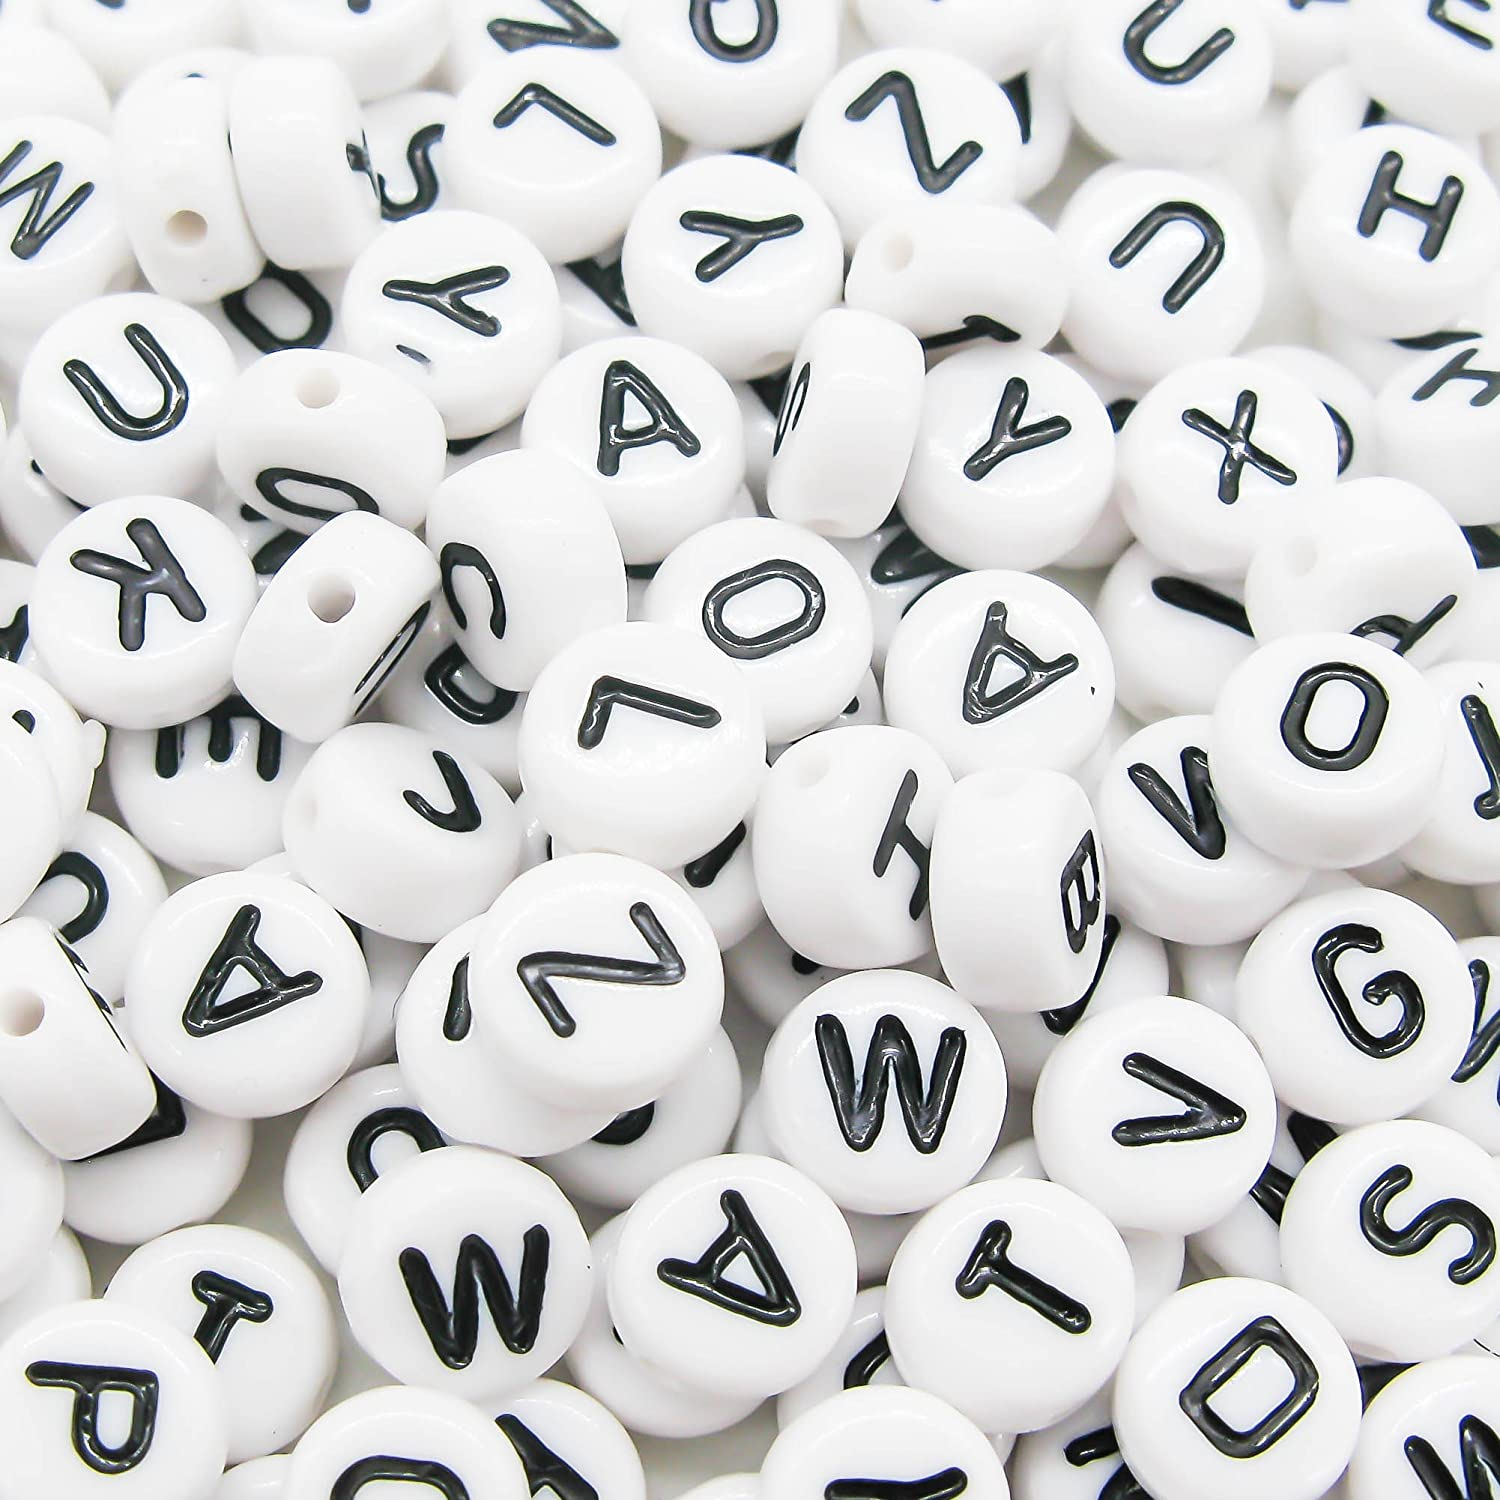 TOAOB 800Pcs 6mm Round Acrylic Letter Beads White Alphabet Beads for DIY Bracelets Necklaces Children's Educational Toys Handmade Gift US-Xfzz0048